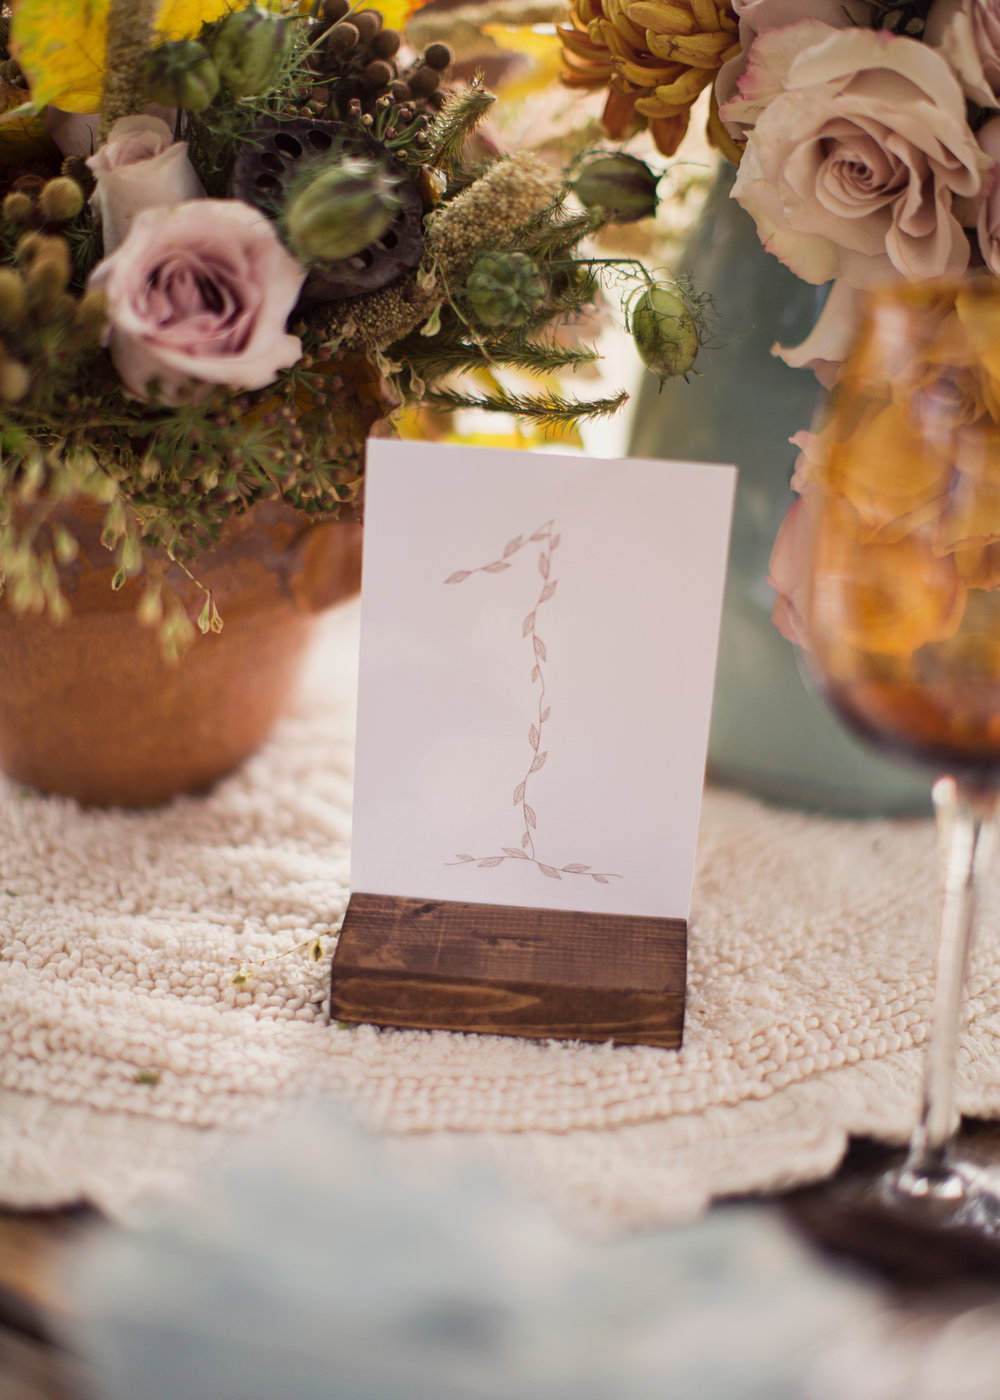 Bohemian Autumn Wedding Inspiration | Fall Wedding Inspiration | Bohemian Wedding Inspiration | Michelle Leo Events | Utah Event Planner and Designer | Alixann Loosle Photography